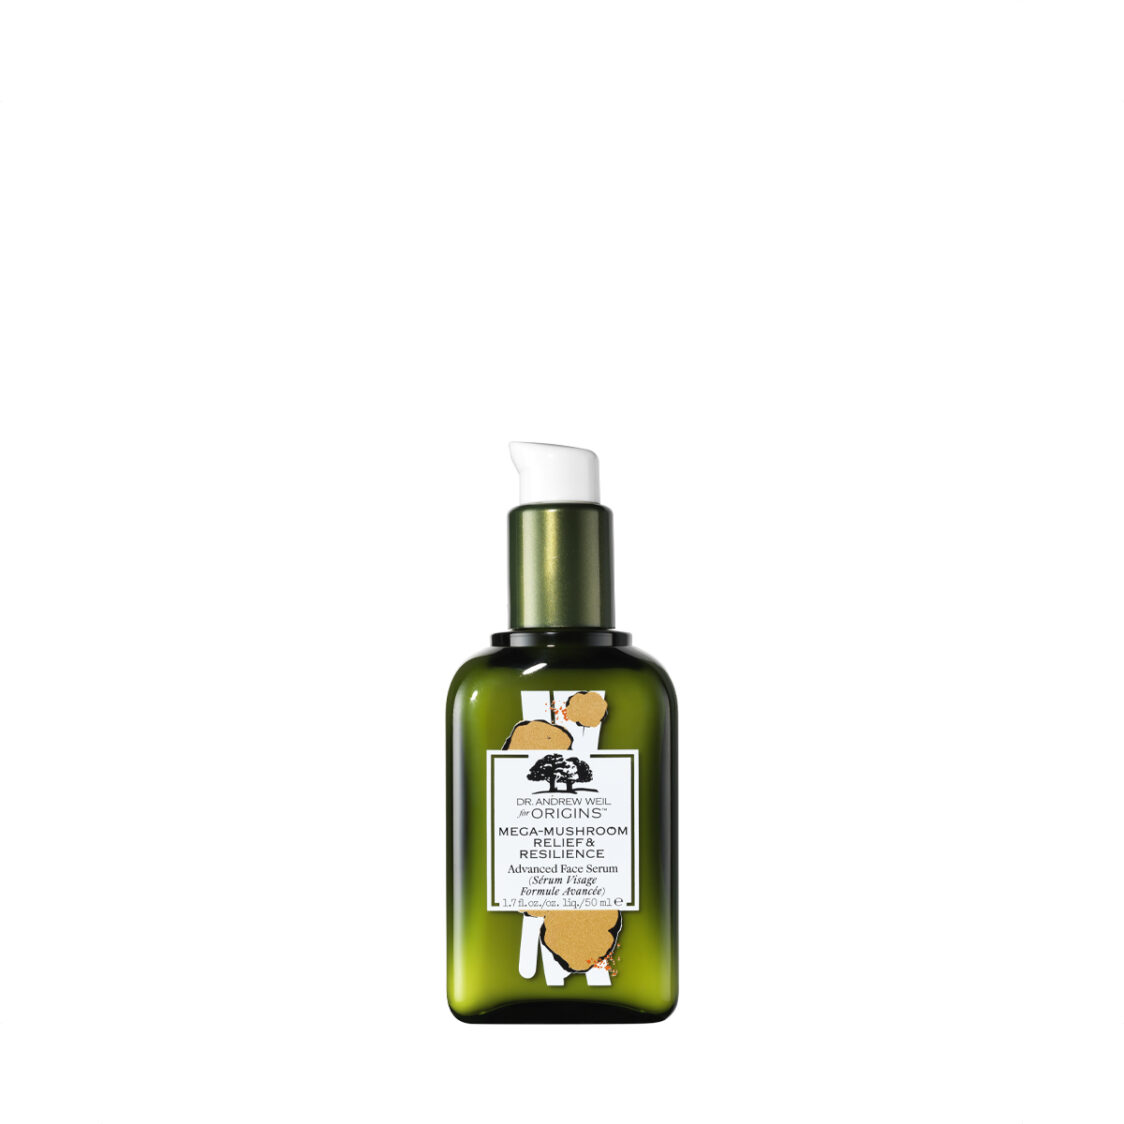 Limited Edition Dr Andrew Weil for Origins Mega-Mushroom Relief  Resilience Advanced Face Serum 50ml